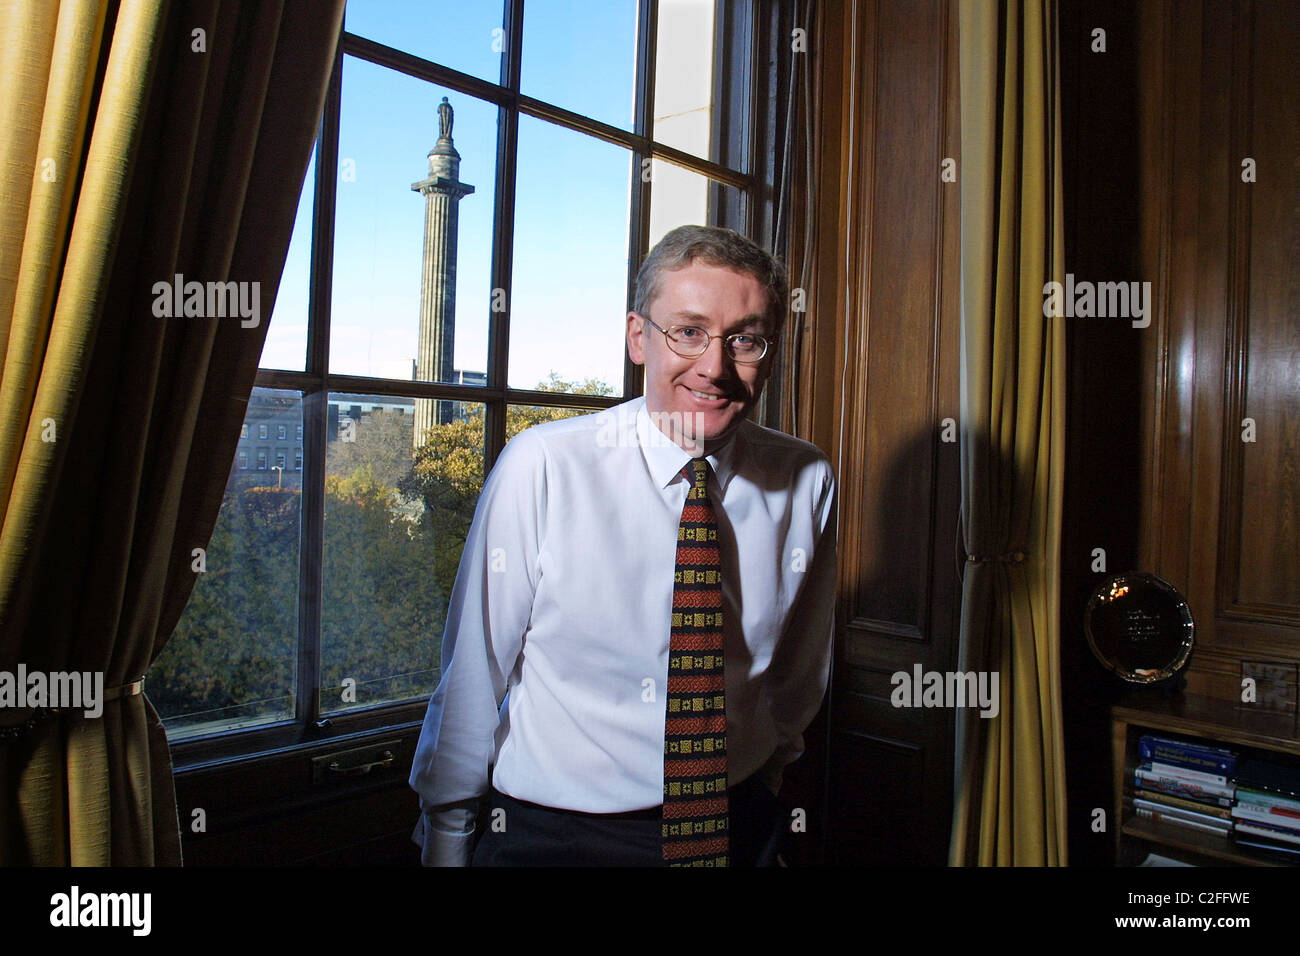 Sir Fred Goodwin ex-Chief Executive of the Royal Bank of Scotland,  in his office in St. Andrews Square, Edinburgh - Stock Image